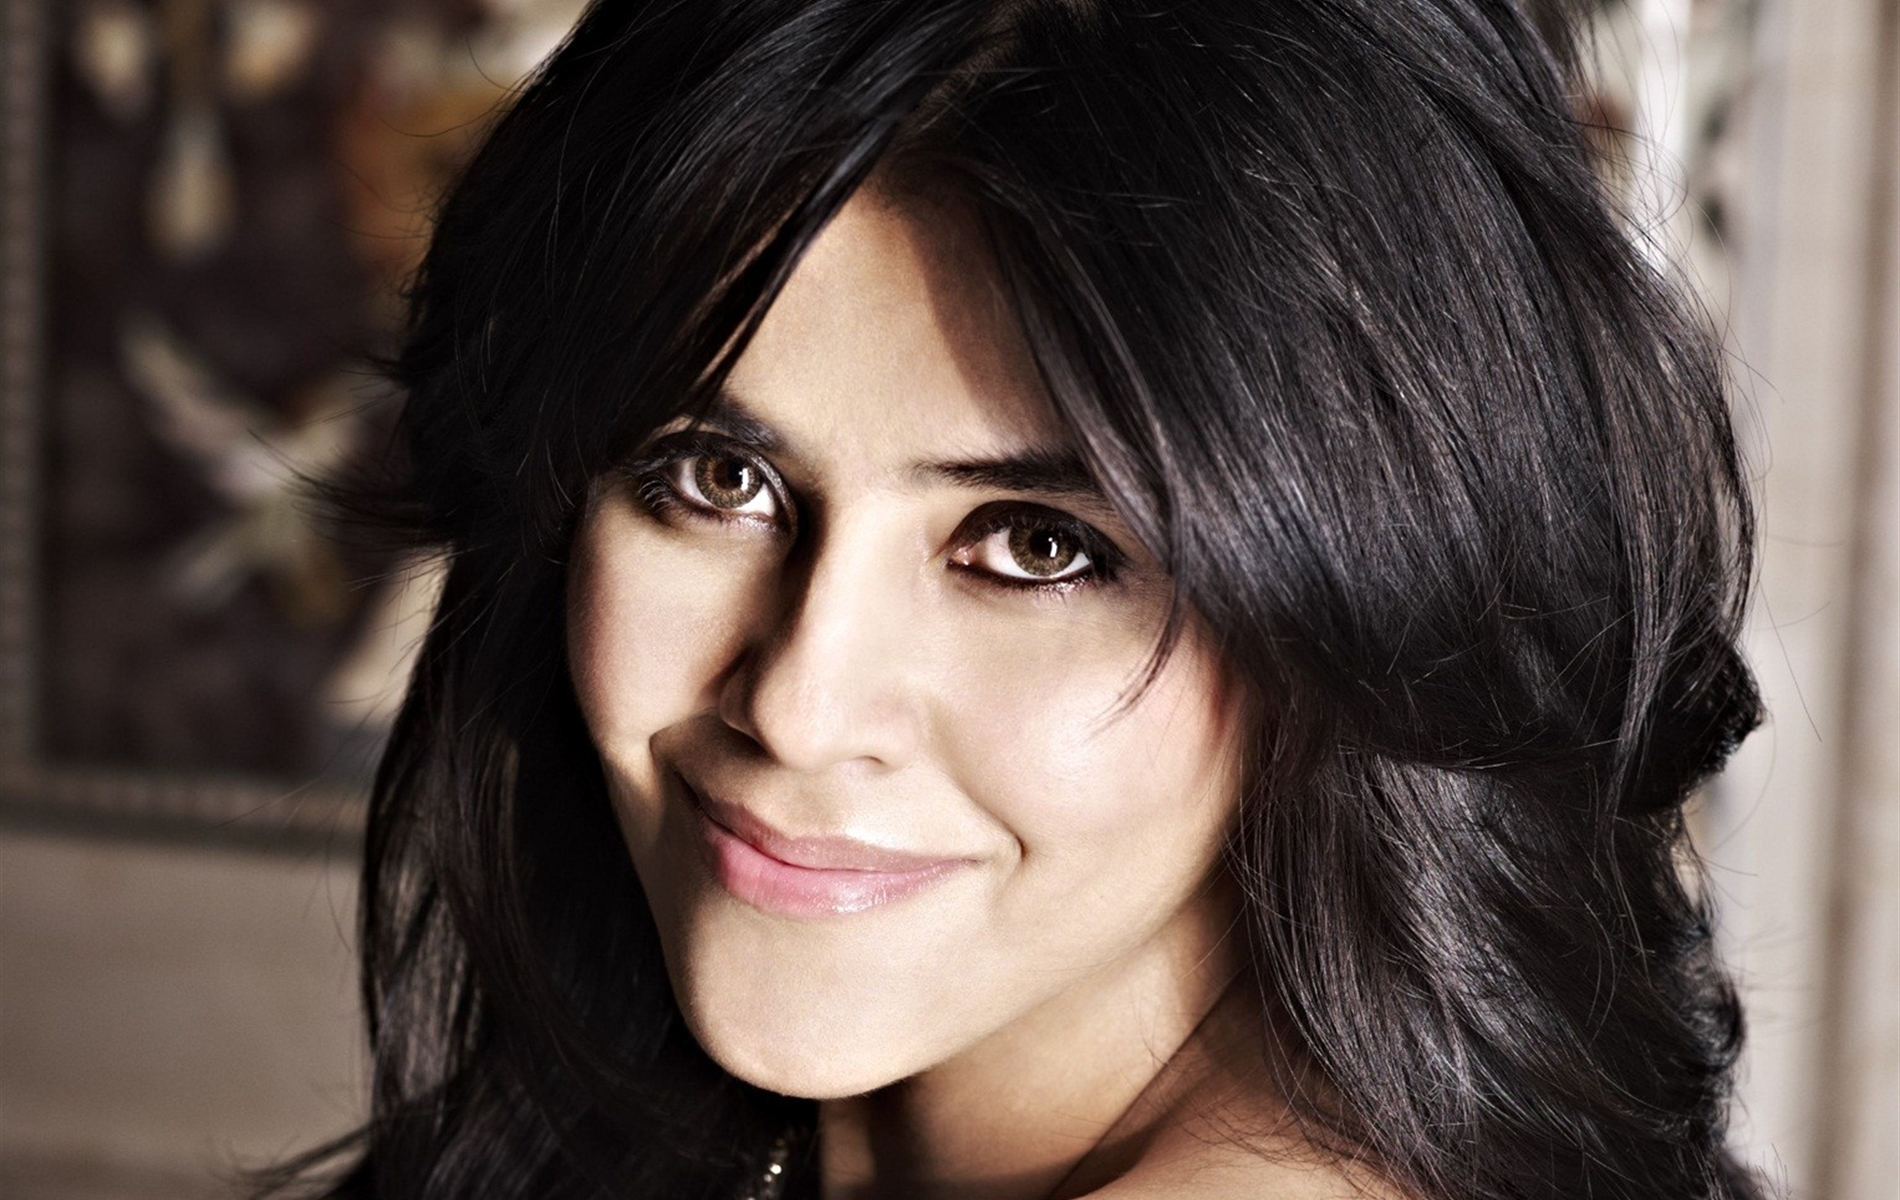 Ekta Kapoor Is Now A Mother Of A Baby Boy! Do You Want To Know His Name?